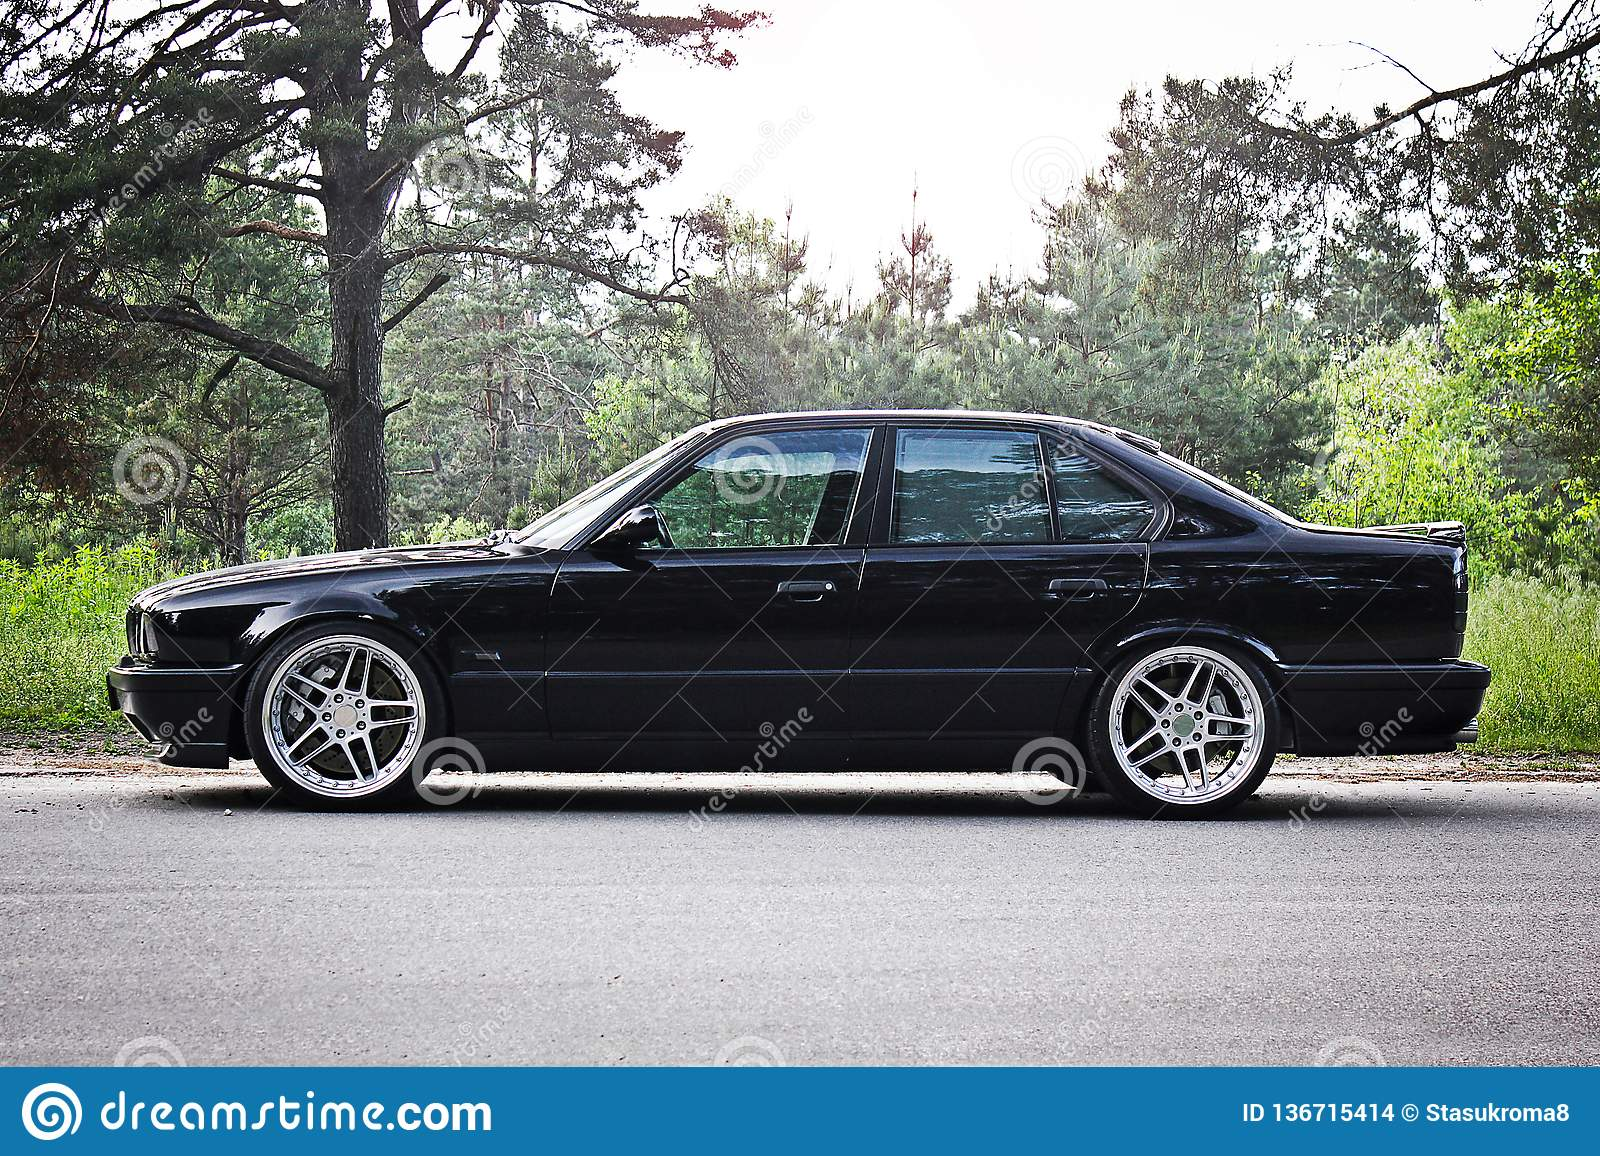 Kiev Ukraine May 17 2014 Bmw M5 E34 Against The Background Of The Forest Editorial Stock Image Image Of Bentley Chrome 136715414